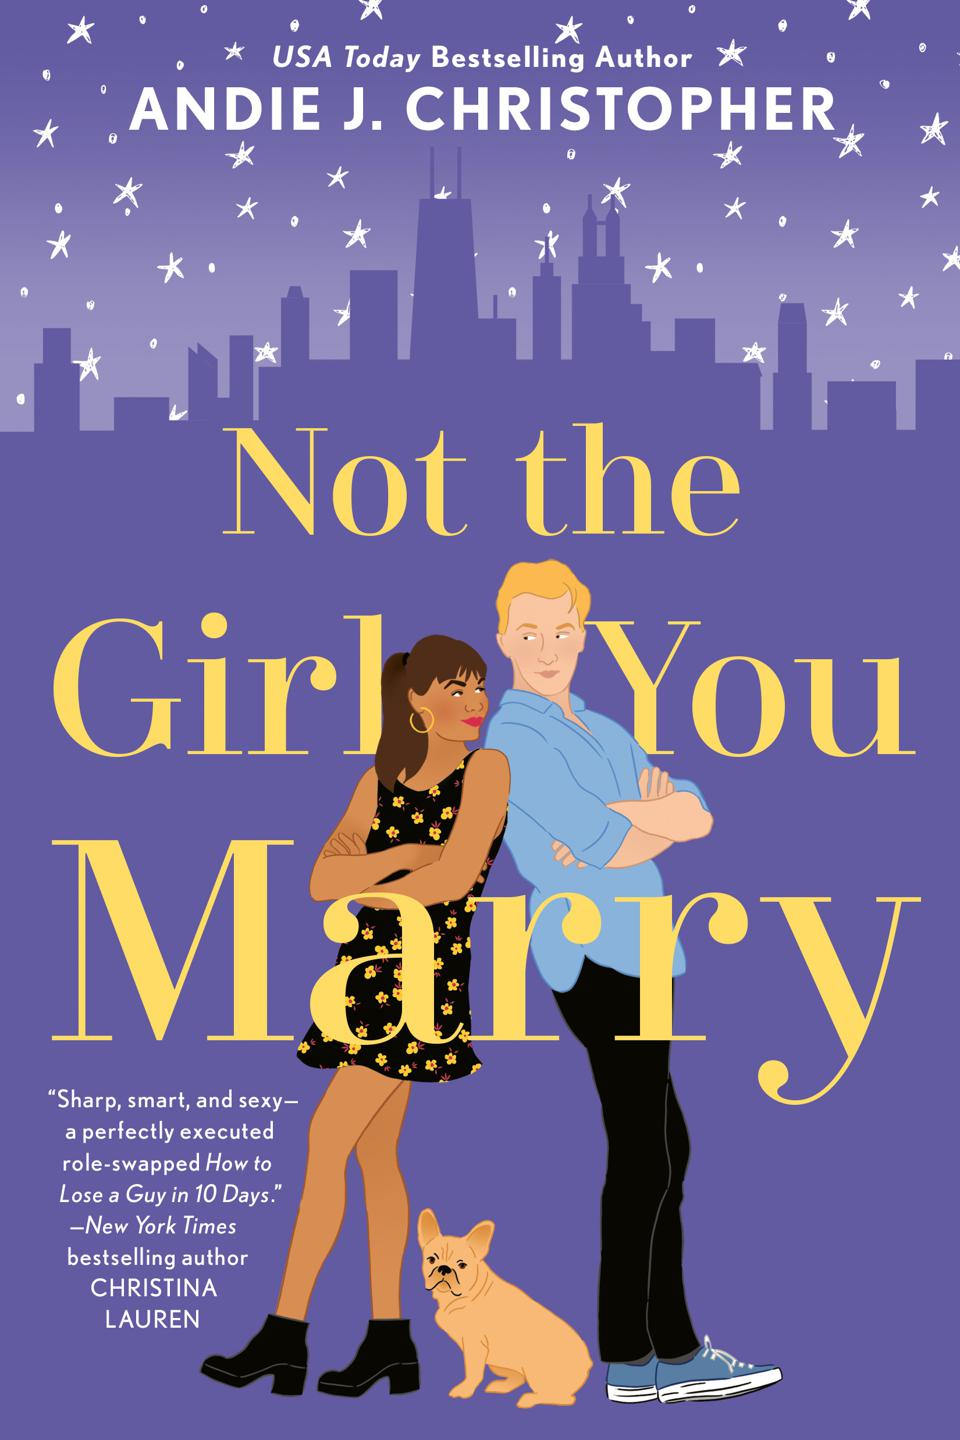 'How To Lose A Guy In 10 Days' Inspired This New Feminist Romance Novel With A Biracial Heroine